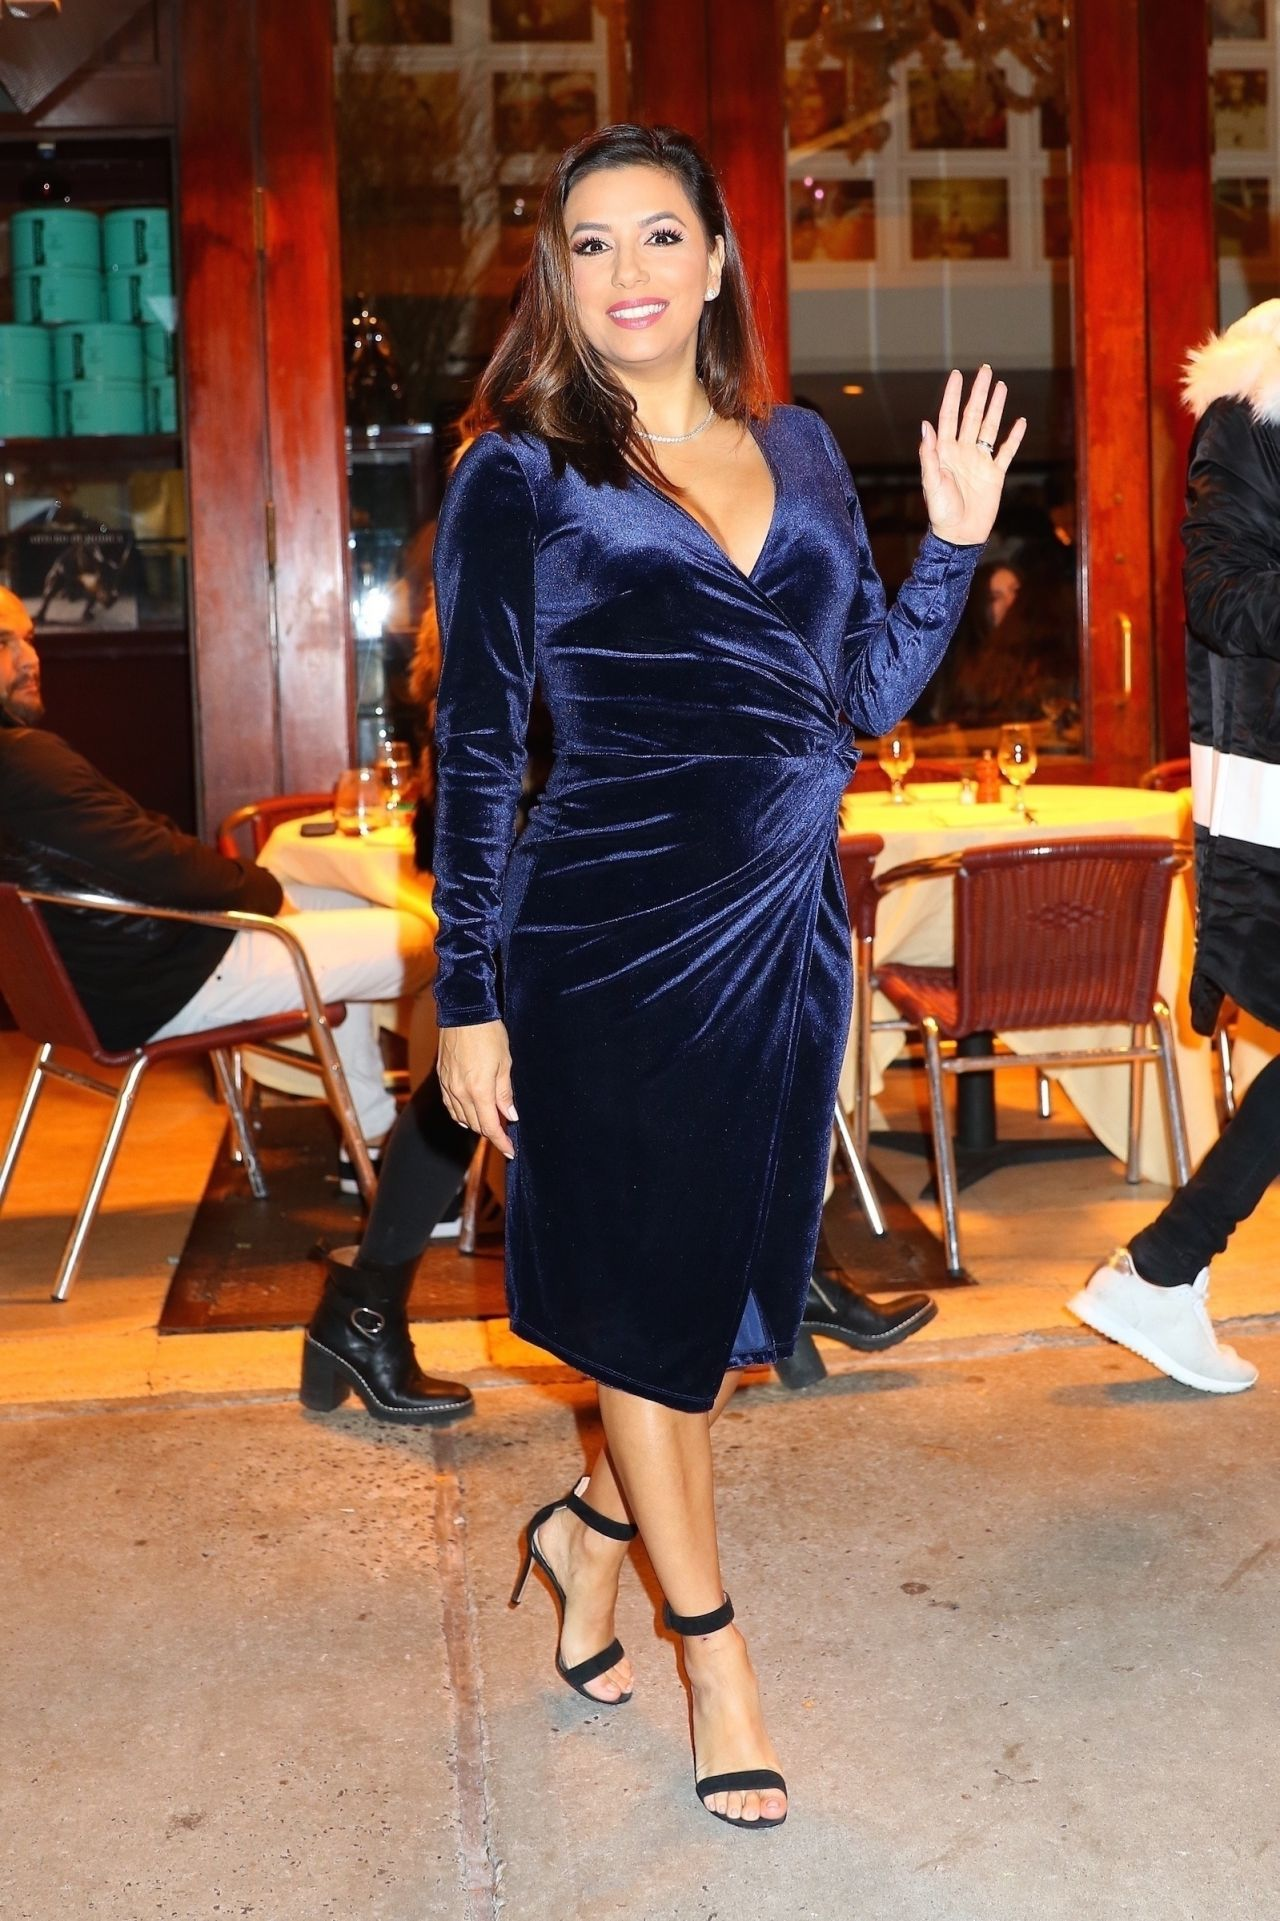 http://celebmafia.com/wp-content/uploads/2017/11/eva-longoria-shows-off-her-eclectic-style-cipriani-restaurant-in-ny-11-21-2017-1.jpg